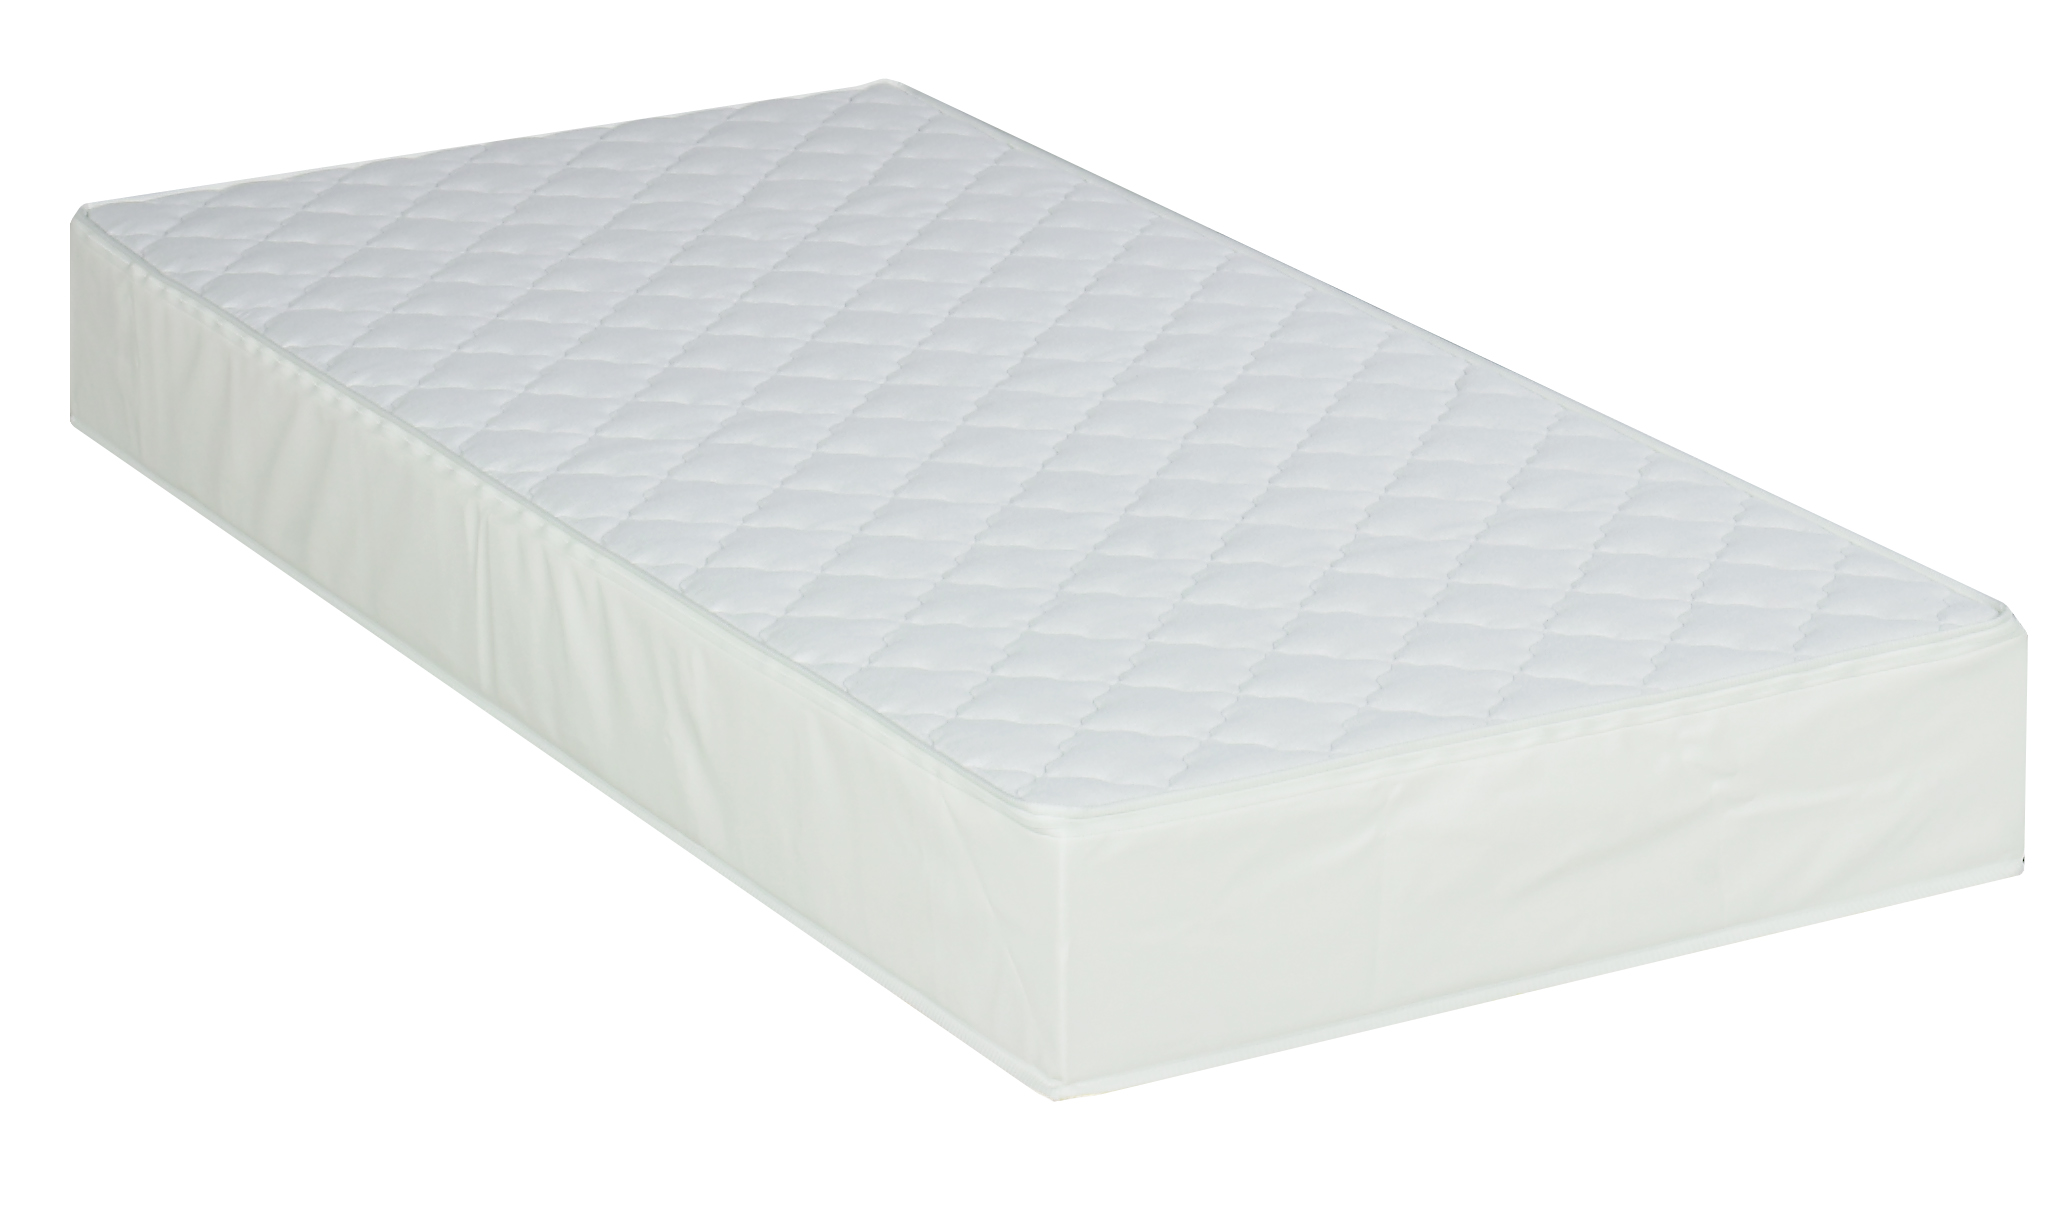 matelas eau aqualight premium la maison du dos. Black Bedroom Furniture Sets. Home Design Ideas